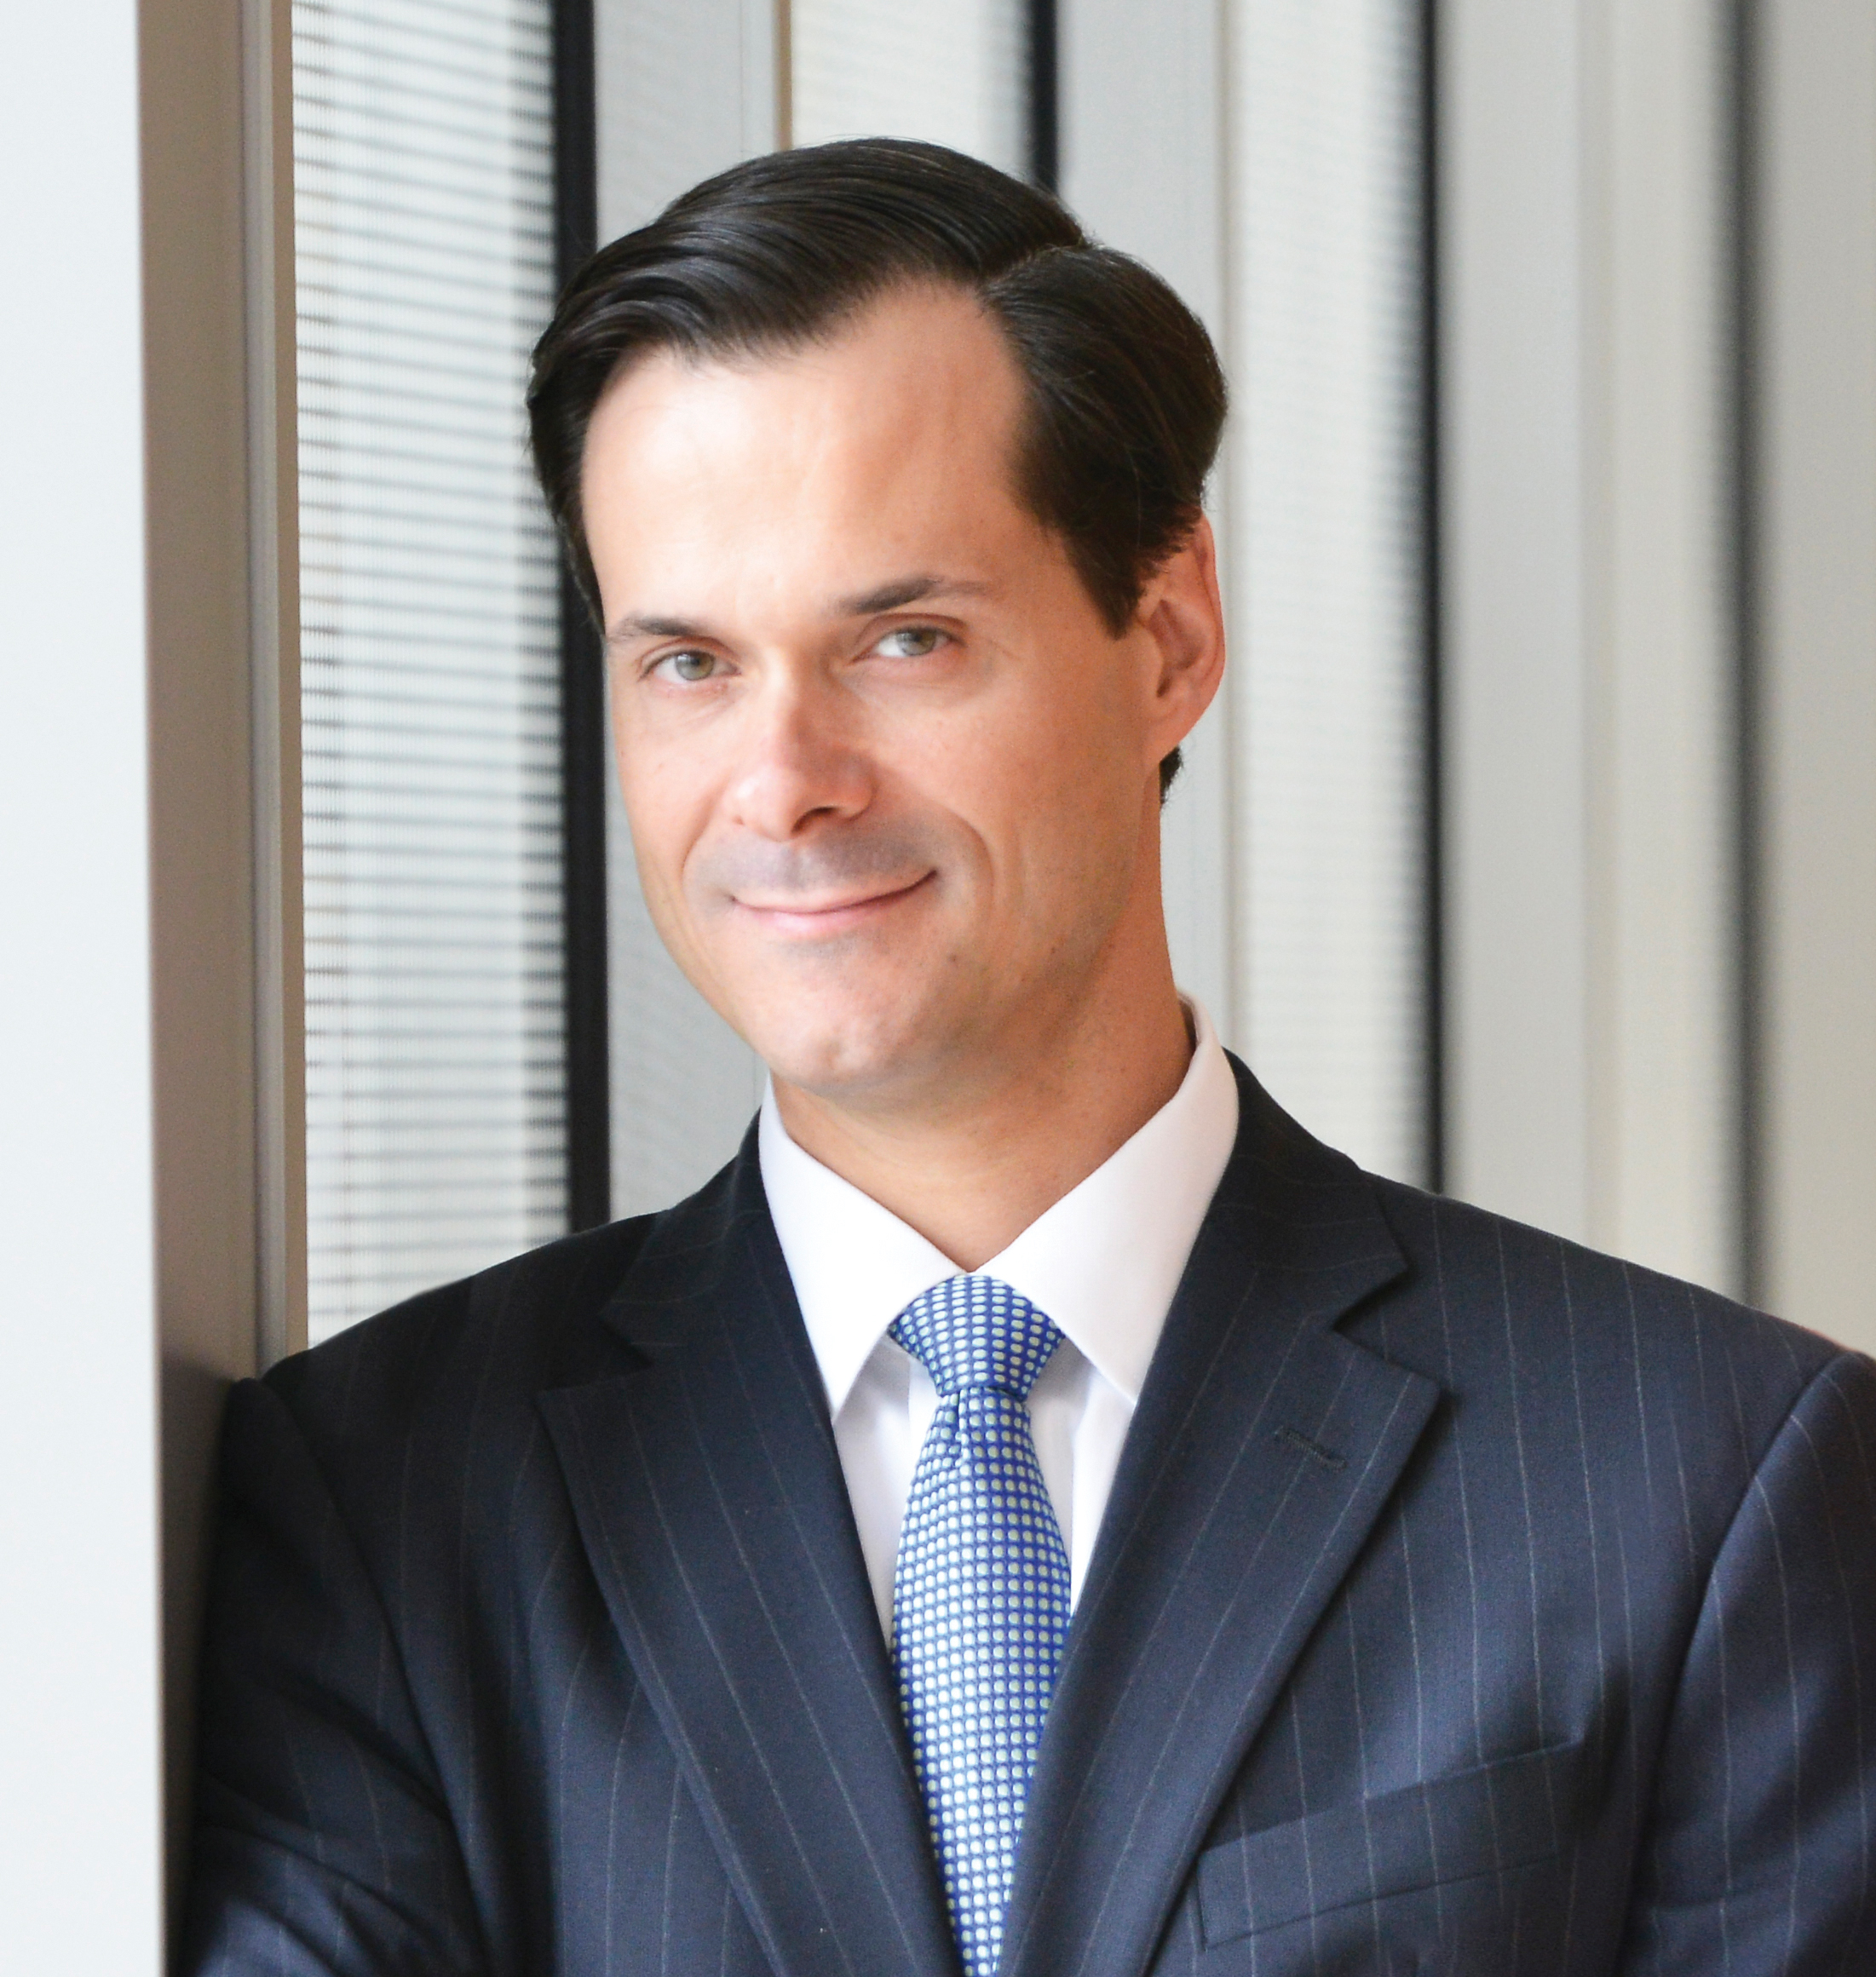 ©2013 Philip Greenberg        917 804 8385  PJGREEN4@aol.com  July 22 2013 Anthony W. Crowell  16th Dean and President of New York Law School    ©2013 Philip Greenberg  917 804 8385 PJGREEN4@aol.com